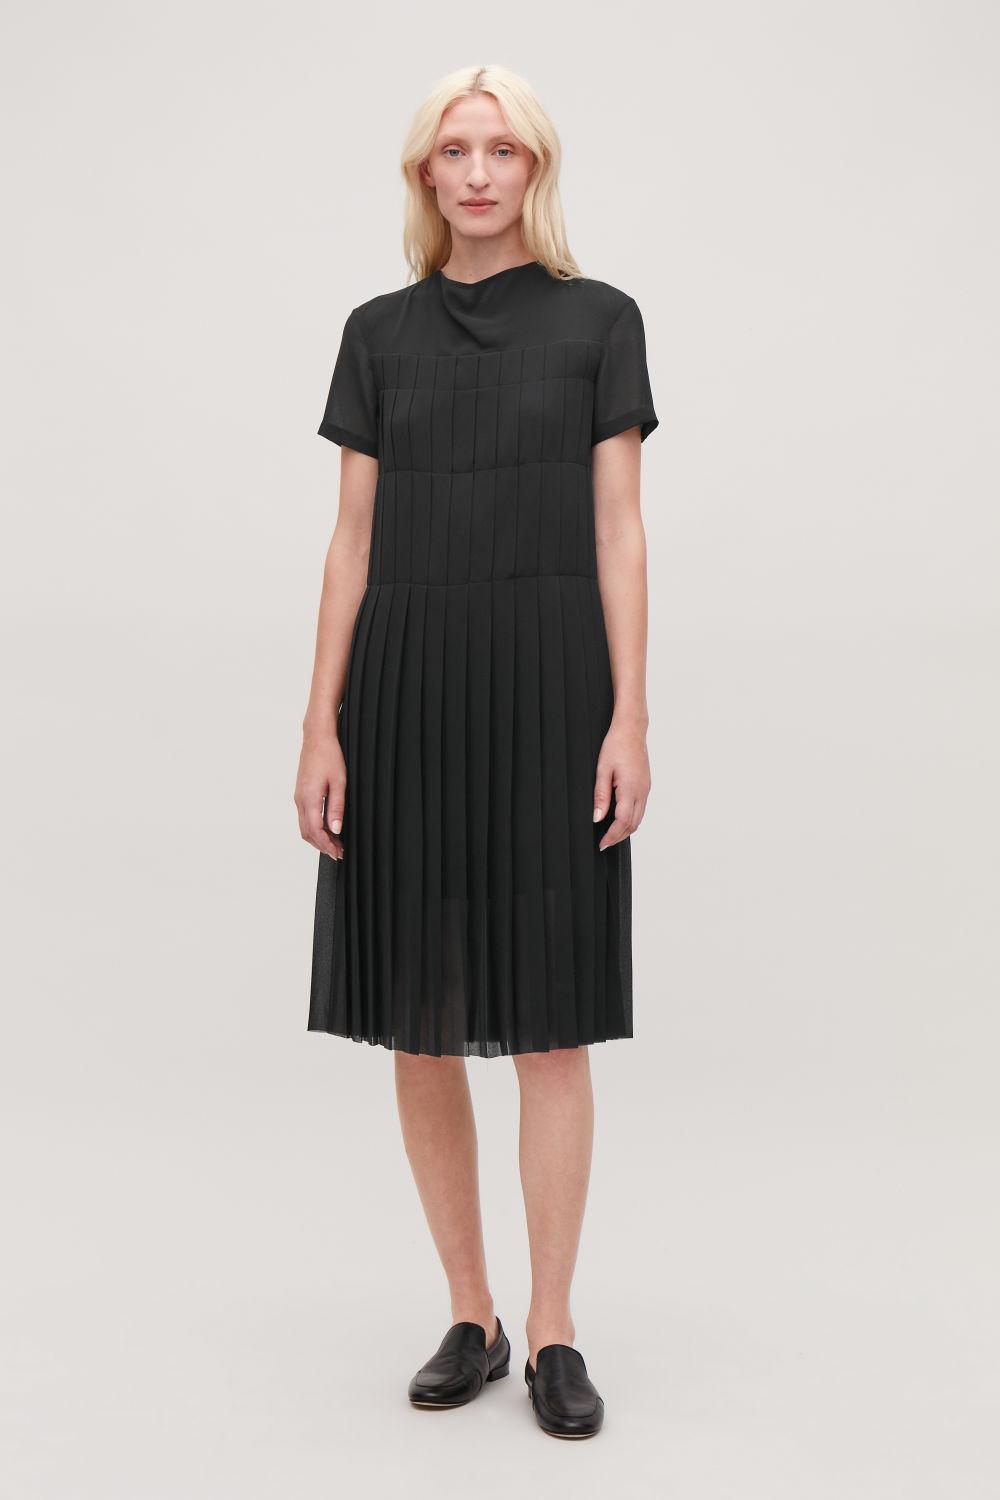 COS DRAPED-NECK PLEATED DRESS,Black